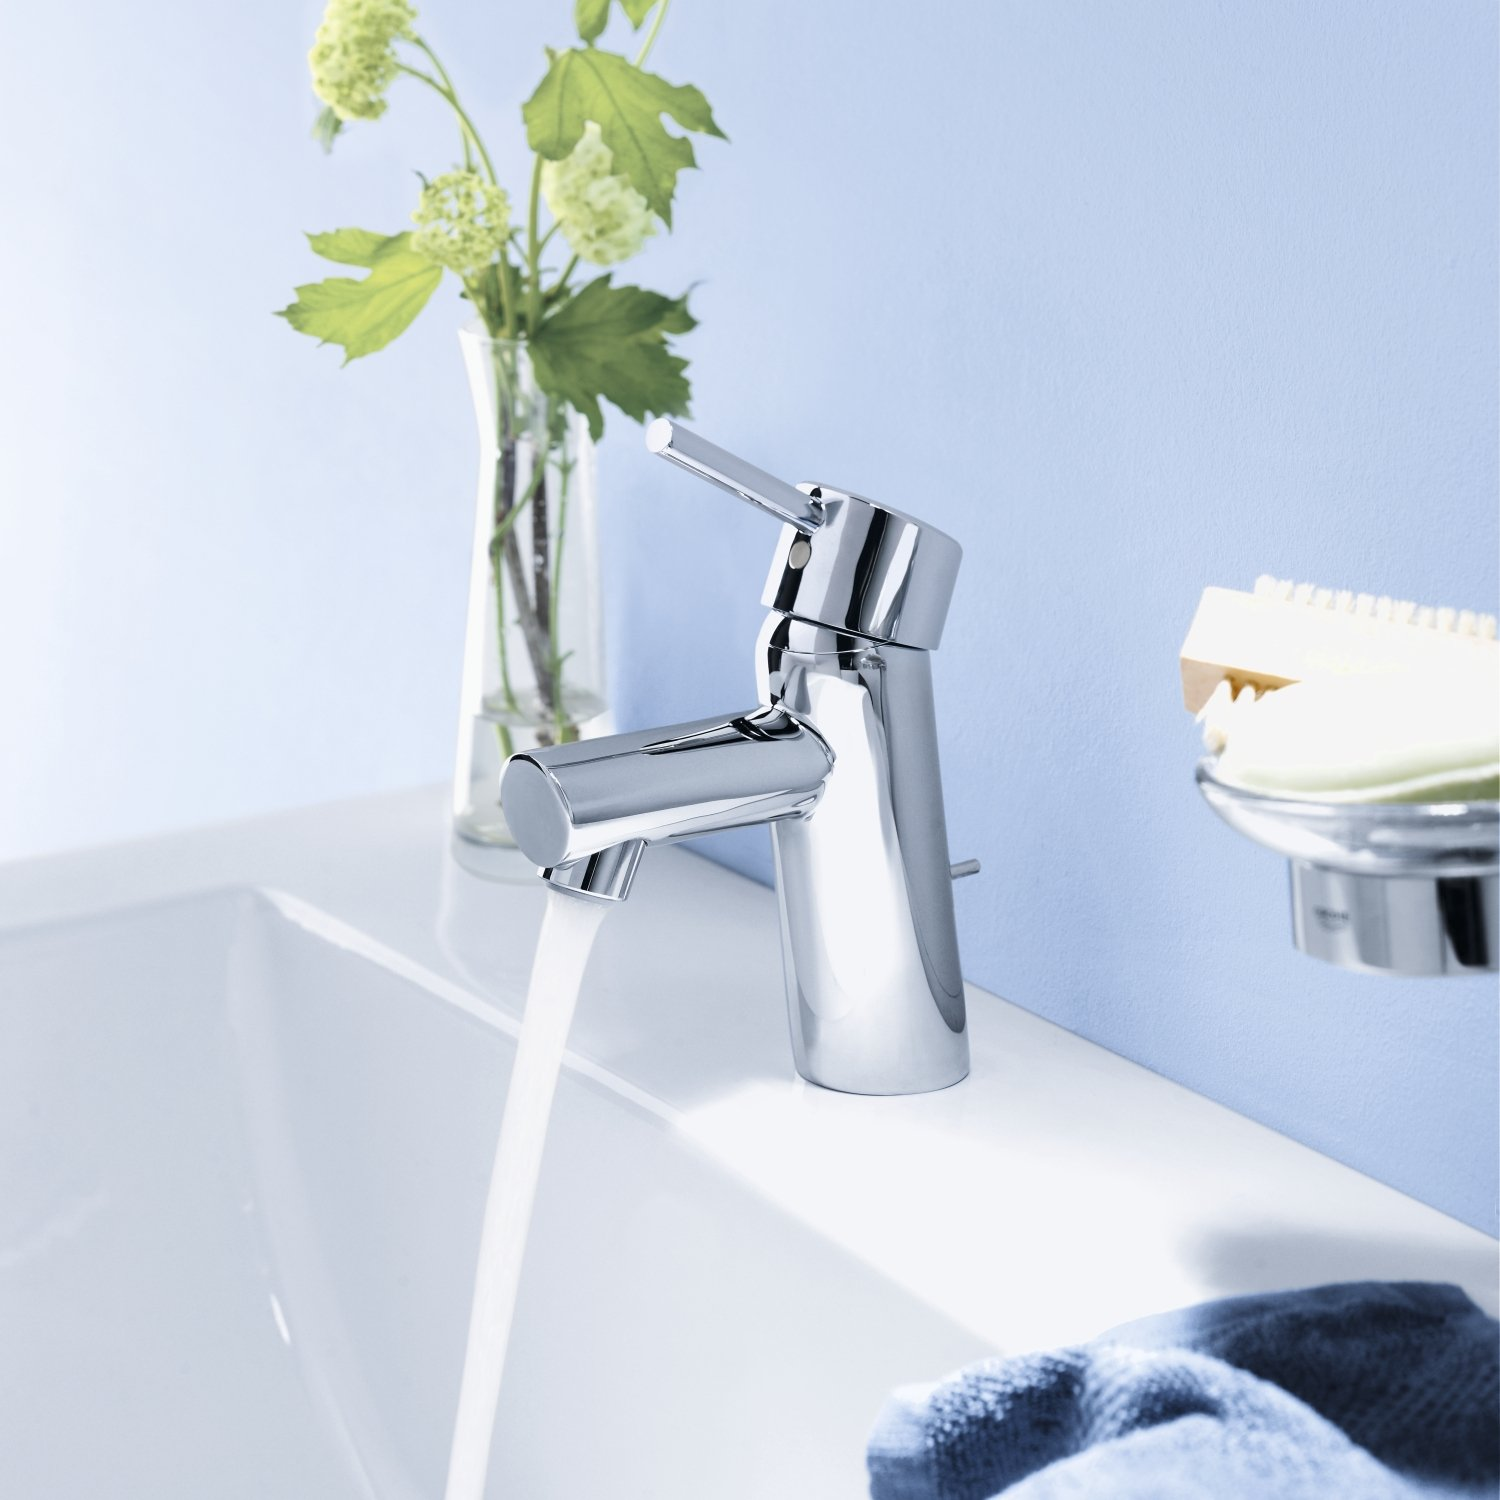 Grohe 34270001 Concetto Single-Handle Bathroom Faucet - 1.5 GPM ...